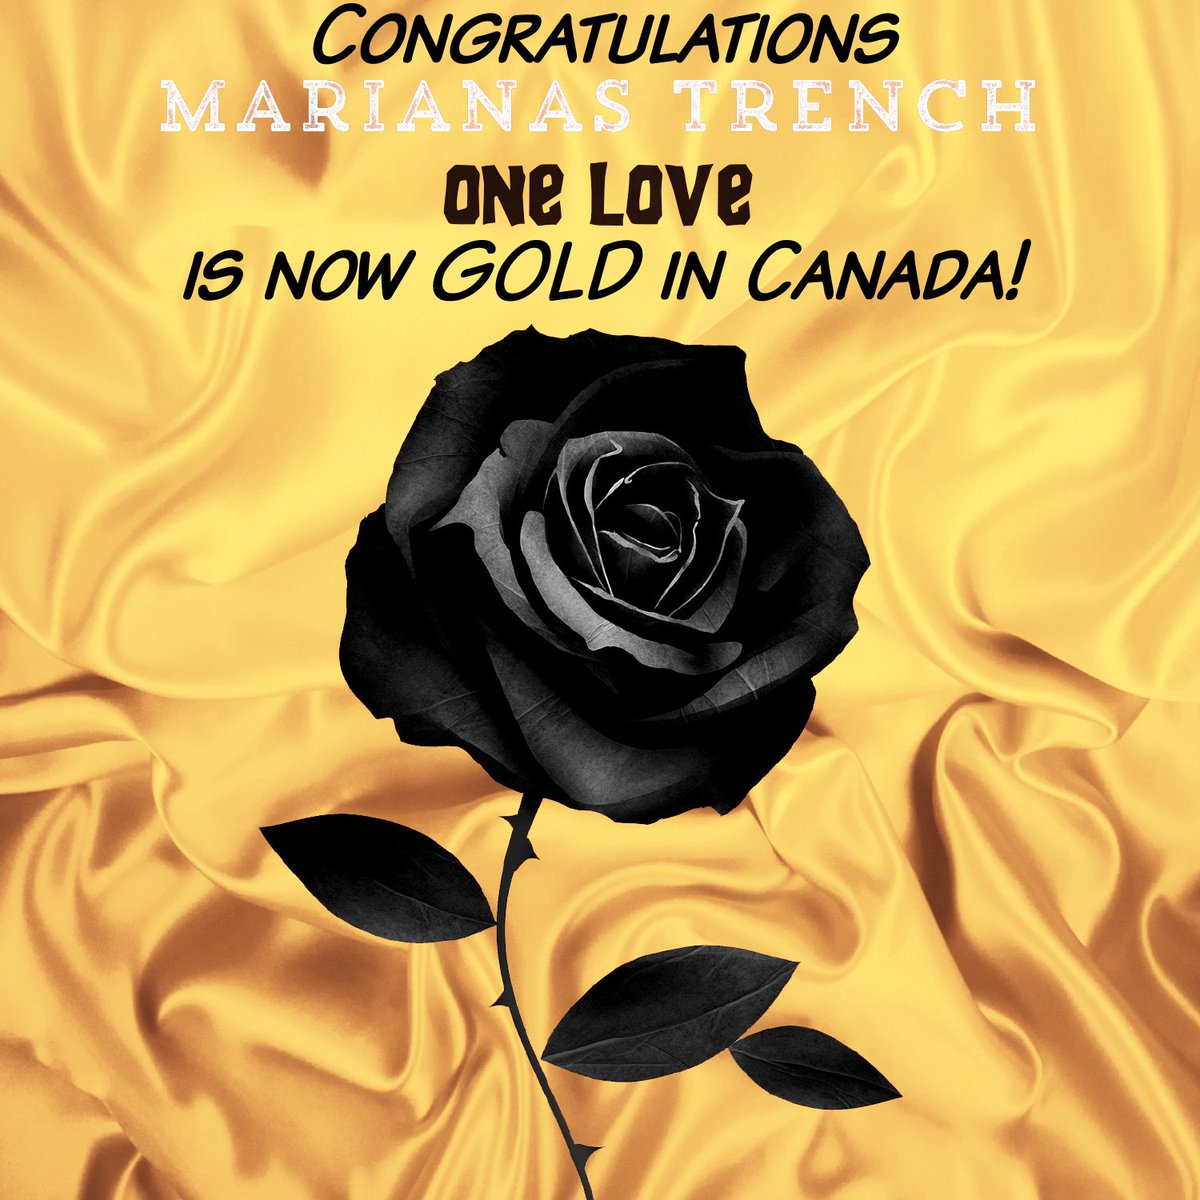 Congratulations @mtrench! #OneLove is now #Gold in Canada! @GoldPlatCA https://t.co/1C00Vu0dS3